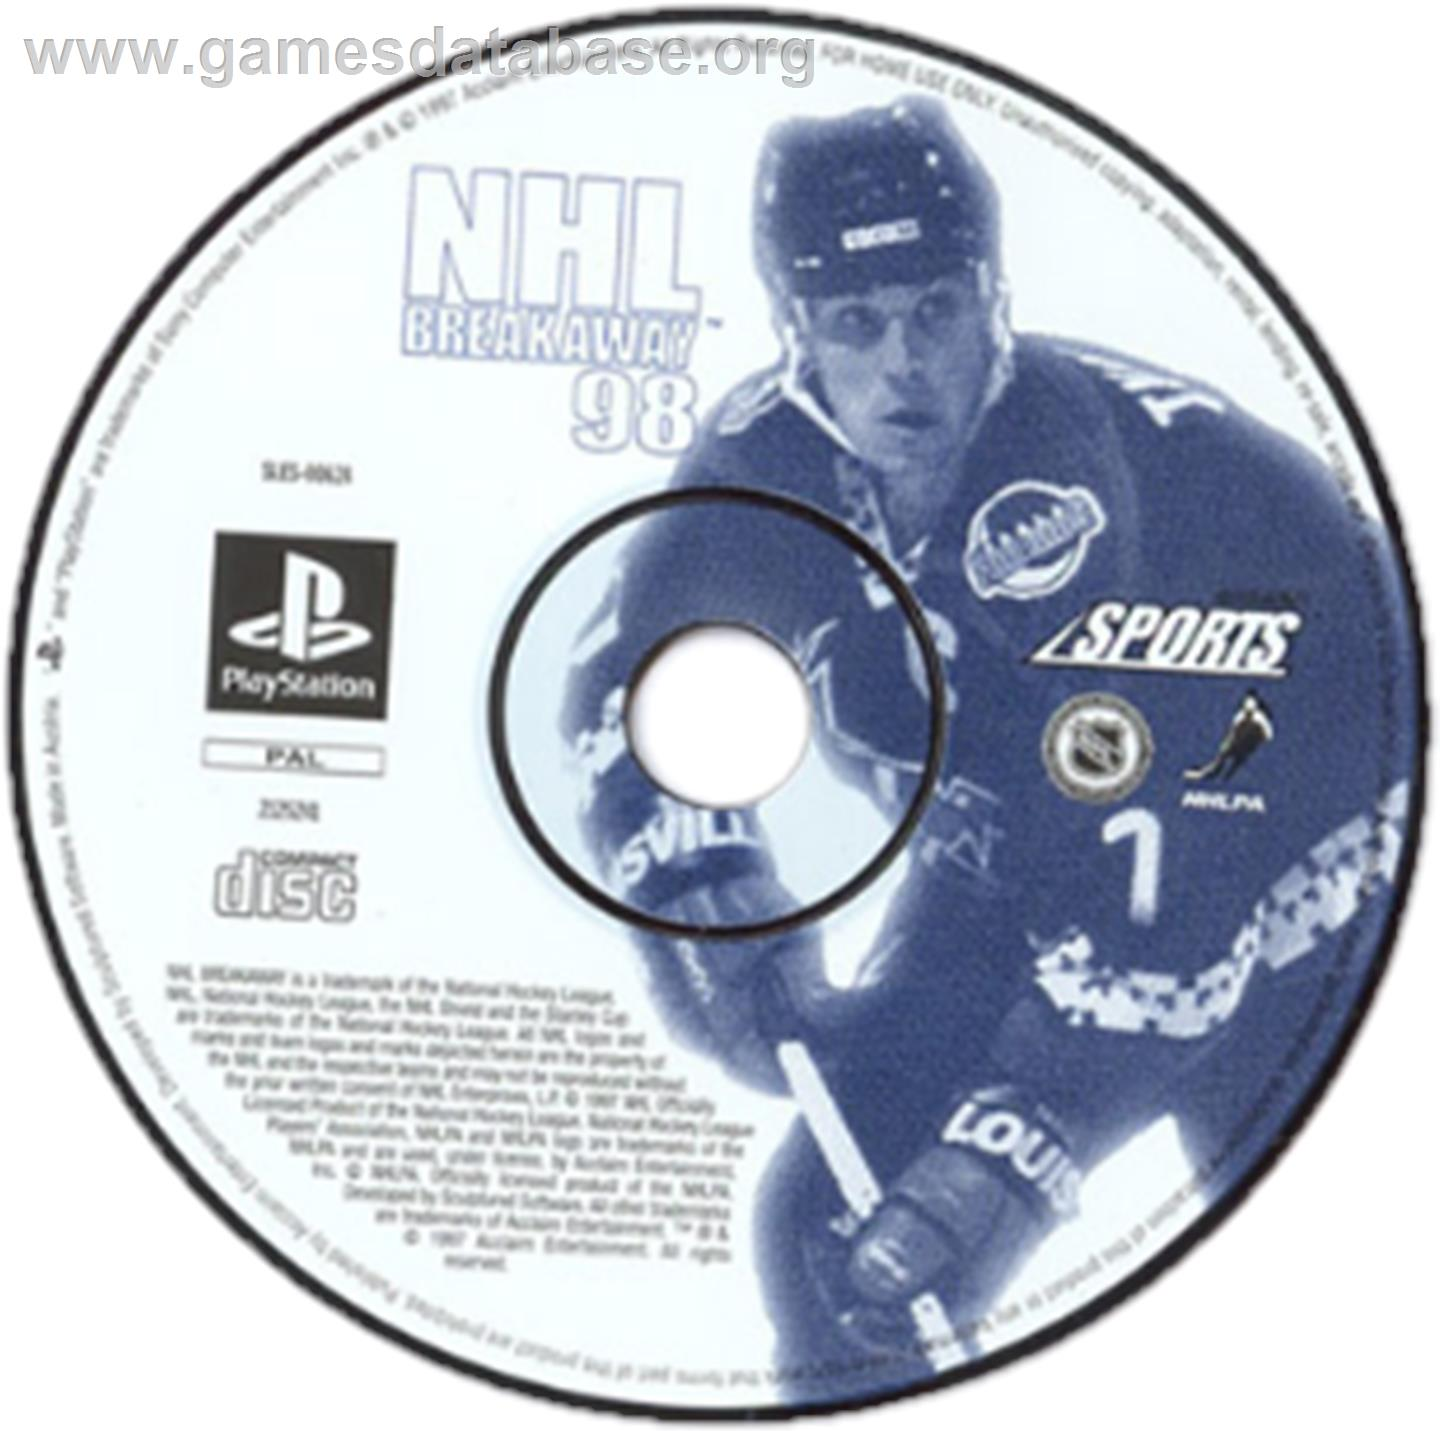 Artwork on the CD for NHL Breakaway 98 on the Sony Playstation.